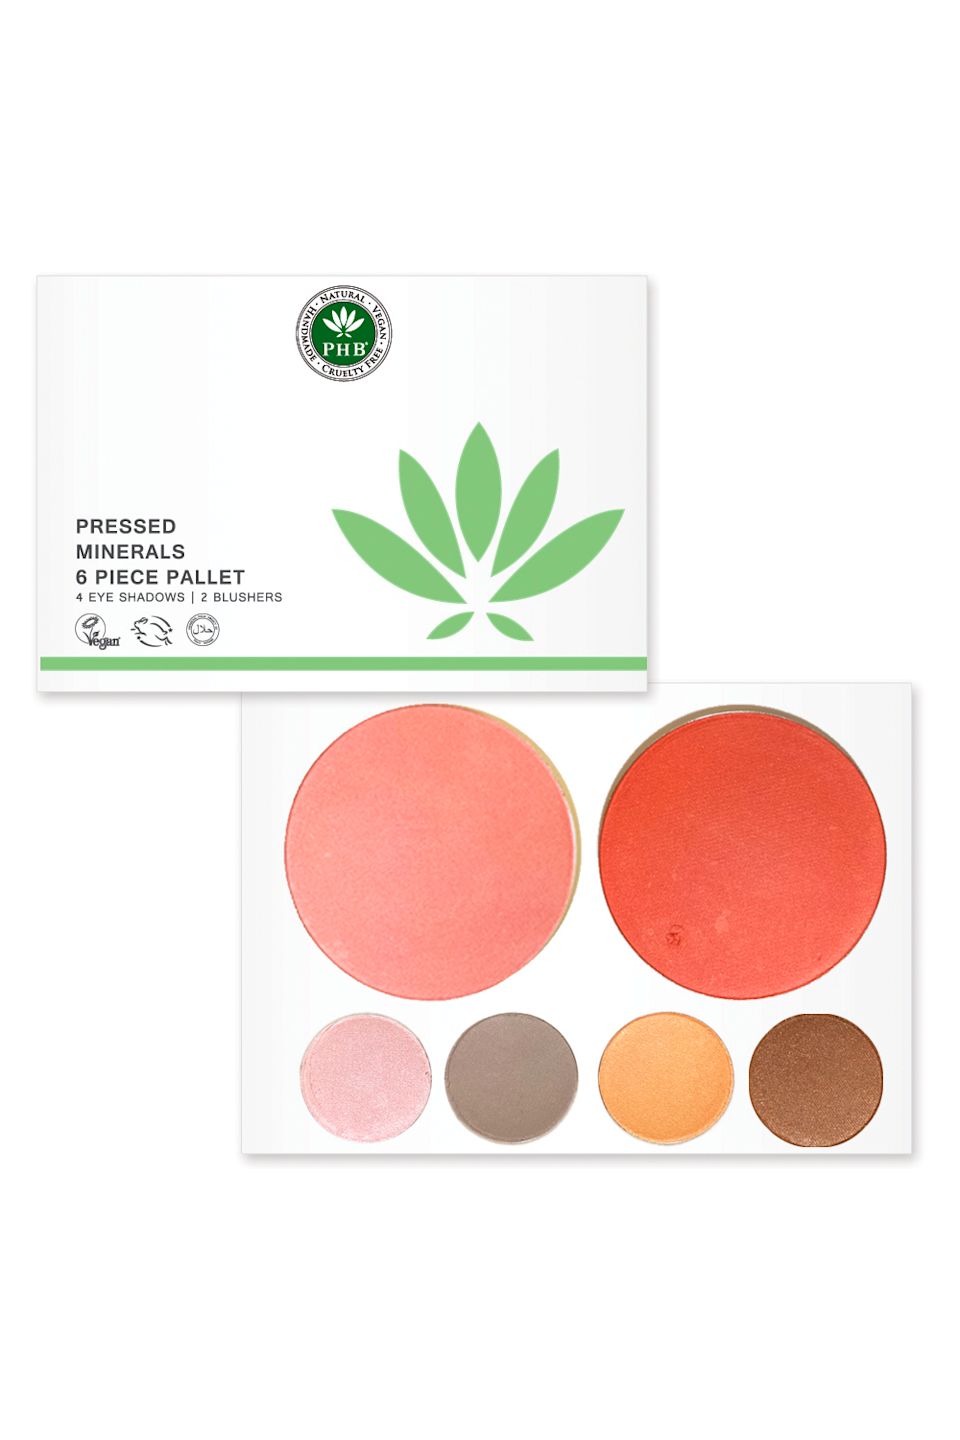 "<p><strong>Mineral Cosmetics</strong></p><p>phbethicalbeauty.co.uk</p><p><strong>$49.95</strong></p><p><a href=""https://www.phbethicalbeauty.co.uk/index.php?route=product%2Fproduct&product_id=811"" rel=""nofollow noopener"" target=""_blank"" data-ylk=""slk:Shop Now"" class=""link rapid-noclick-resp"">Shop Now</a></p><p>Sry, but can we take a moment to appreciate this cute little eyeshadow and blush palette? Phb Ethical Beauty has a wide range of <strong>Halal-certified makeup, skincare, <em>and</em> body products</strong> that are equally as great, including a <a href=""https://www.phbethicalbeauty.co.uk/mesmerise-mascara"" rel=""nofollow noopener"" target=""_blank"" data-ylk=""slk:flake-free mascara"" class=""link rapid-noclick-resp"">flake-free mascara</a>, a <a href=""https://www.phbethicalbeauty.co.uk/skin-care/superfood-moisturiser"" rel=""nofollow noopener"" target=""_blank"" data-ylk=""slk:glowy moisturizer"" class=""link rapid-noclick-resp"">glowy moisturizer</a>, and a <a href=""https://www.phbethicalbeauty.co.uk/body-hair/hand-body-moisturiser"" rel=""nofollow noopener"" target=""_blank"" data-ylk=""slk:shea butter body cream"" class=""link rapid-noclick-resp"">shea butter body cream</a>. P.S. Even though this brand is UK-based, they've got worldwide shipping.</p>"